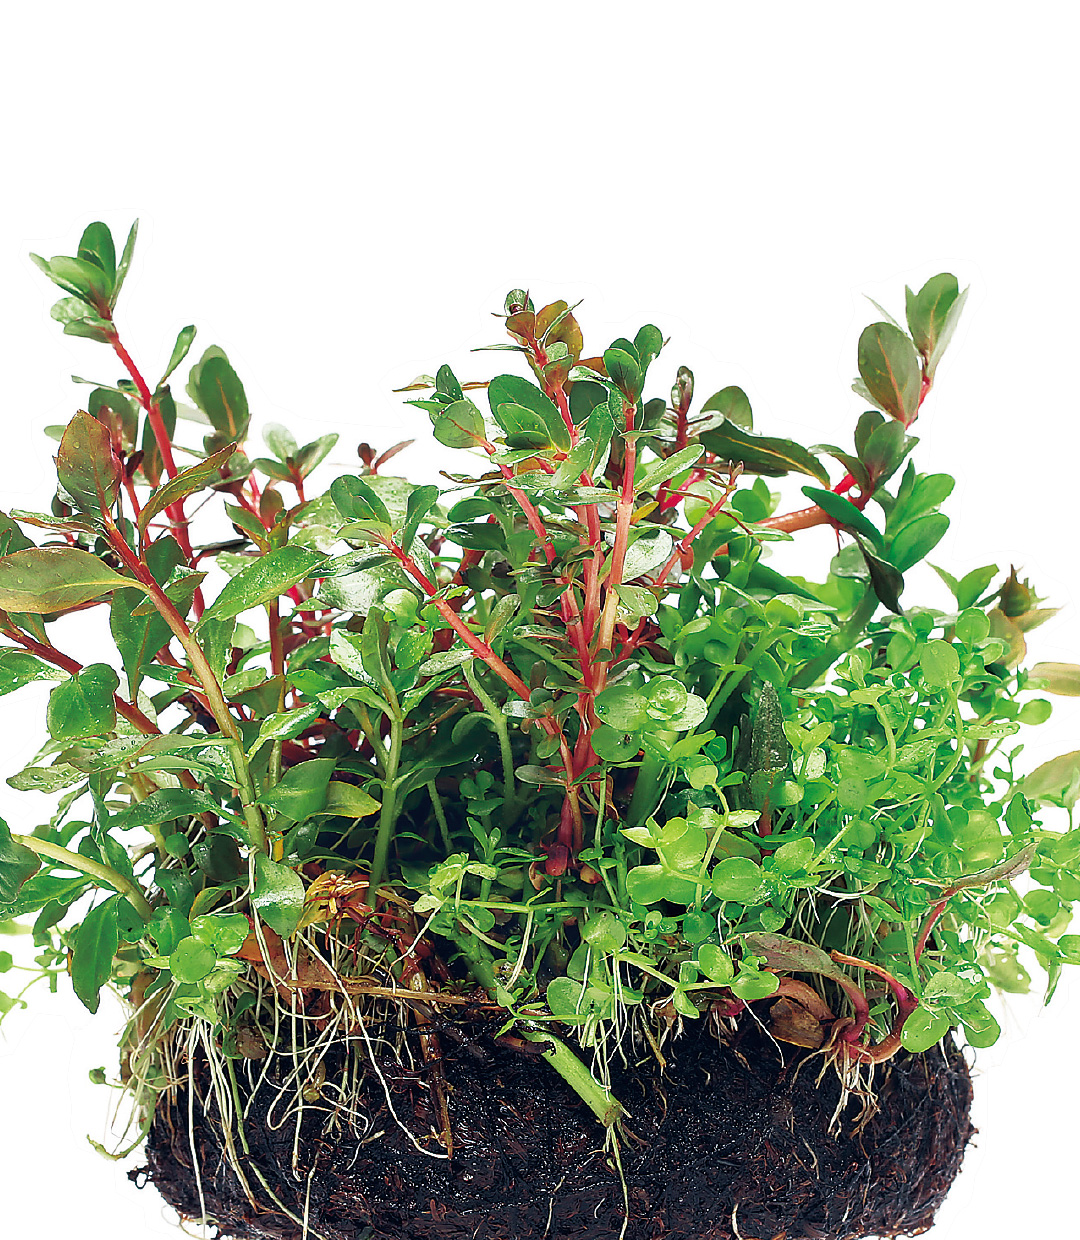 Let's grow aquatic plants simple & easy.